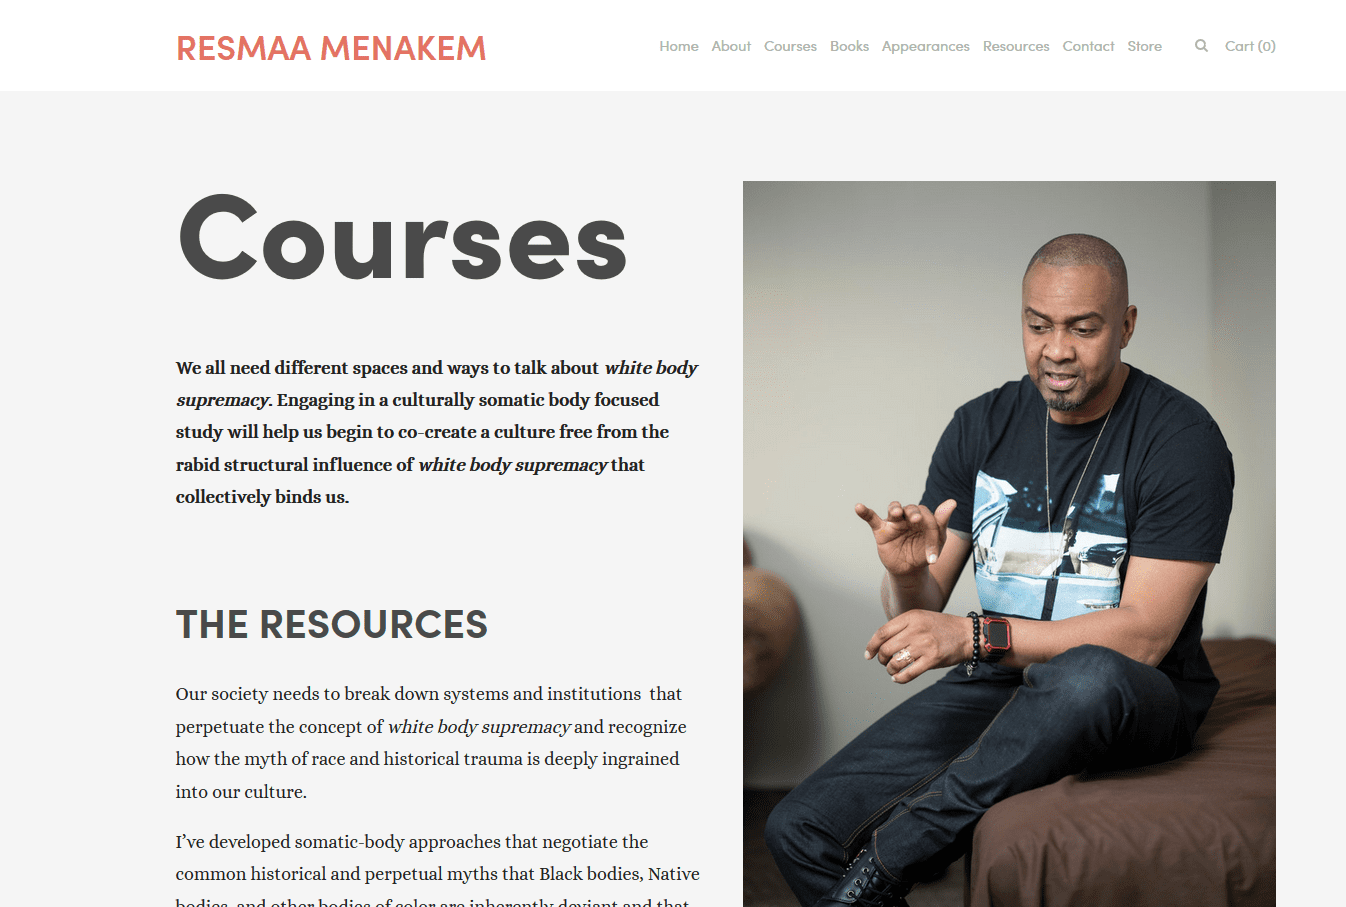 FREE 5-Day Racialized Trauma Home Study Course by Resmaa Menakem